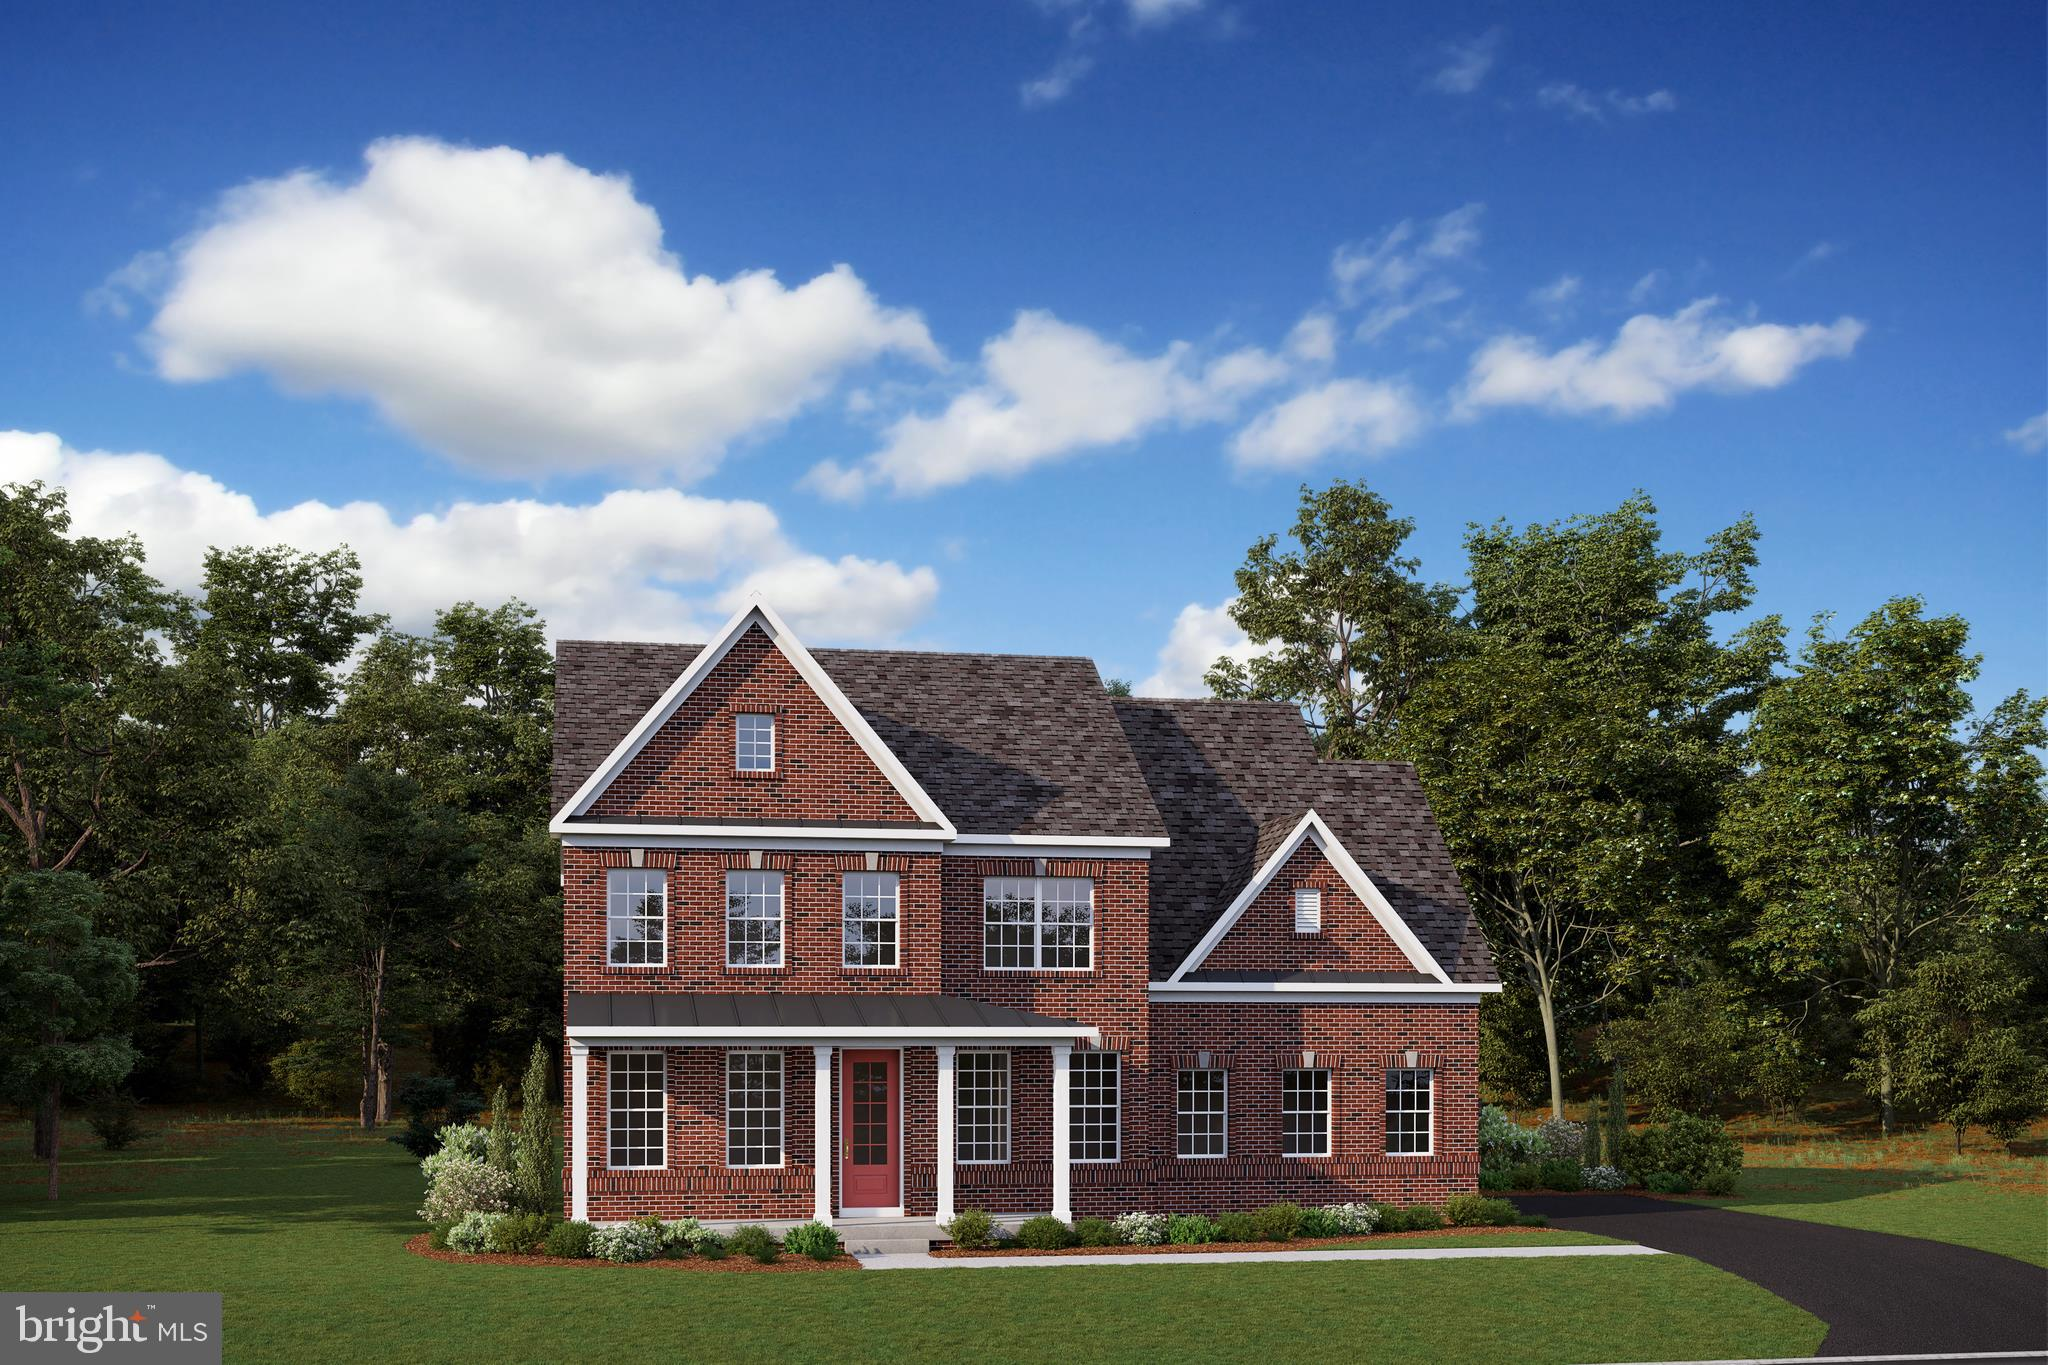 """Welcome to Greystone by NVHomes , a community that more than 90 people have already decided to call home! Greystone features the only single family homes in a neighborhood with sidewalks, rolling hills, and seven miles of trails just minutes from the Borough. The Liberty at Greystone is a modern home for today's family lifestyles. Your stately new home will feature a hardieplank exterior facade with a two-car side entry garage and a covered front portico for greeting guests in style. Inside, the main living level boasts luxury features such as 5"""" hardwood floors, crown moulding, and oak stairs. As you enter into your gourmet kitchen you'll find a grand kitchen island with upgraded CushionClose cabinetry and quartz countertops. Need to work from home? An included private study awaits you off kitchen. Retreat upstairs to an owner's suite with spa bath, including two full walk-in closets. Secondary bedrooms include sizable closets and access to two additional upper level bathrooms. An optional finished lower level is the perfect spot for game night. You will love to call Greystone your new home!  Other floorplans and homesites are available. Photos are representative. NVHomes is taking precautionary measures  to protect our valued customers and employees. Our models are open by by appointment."""